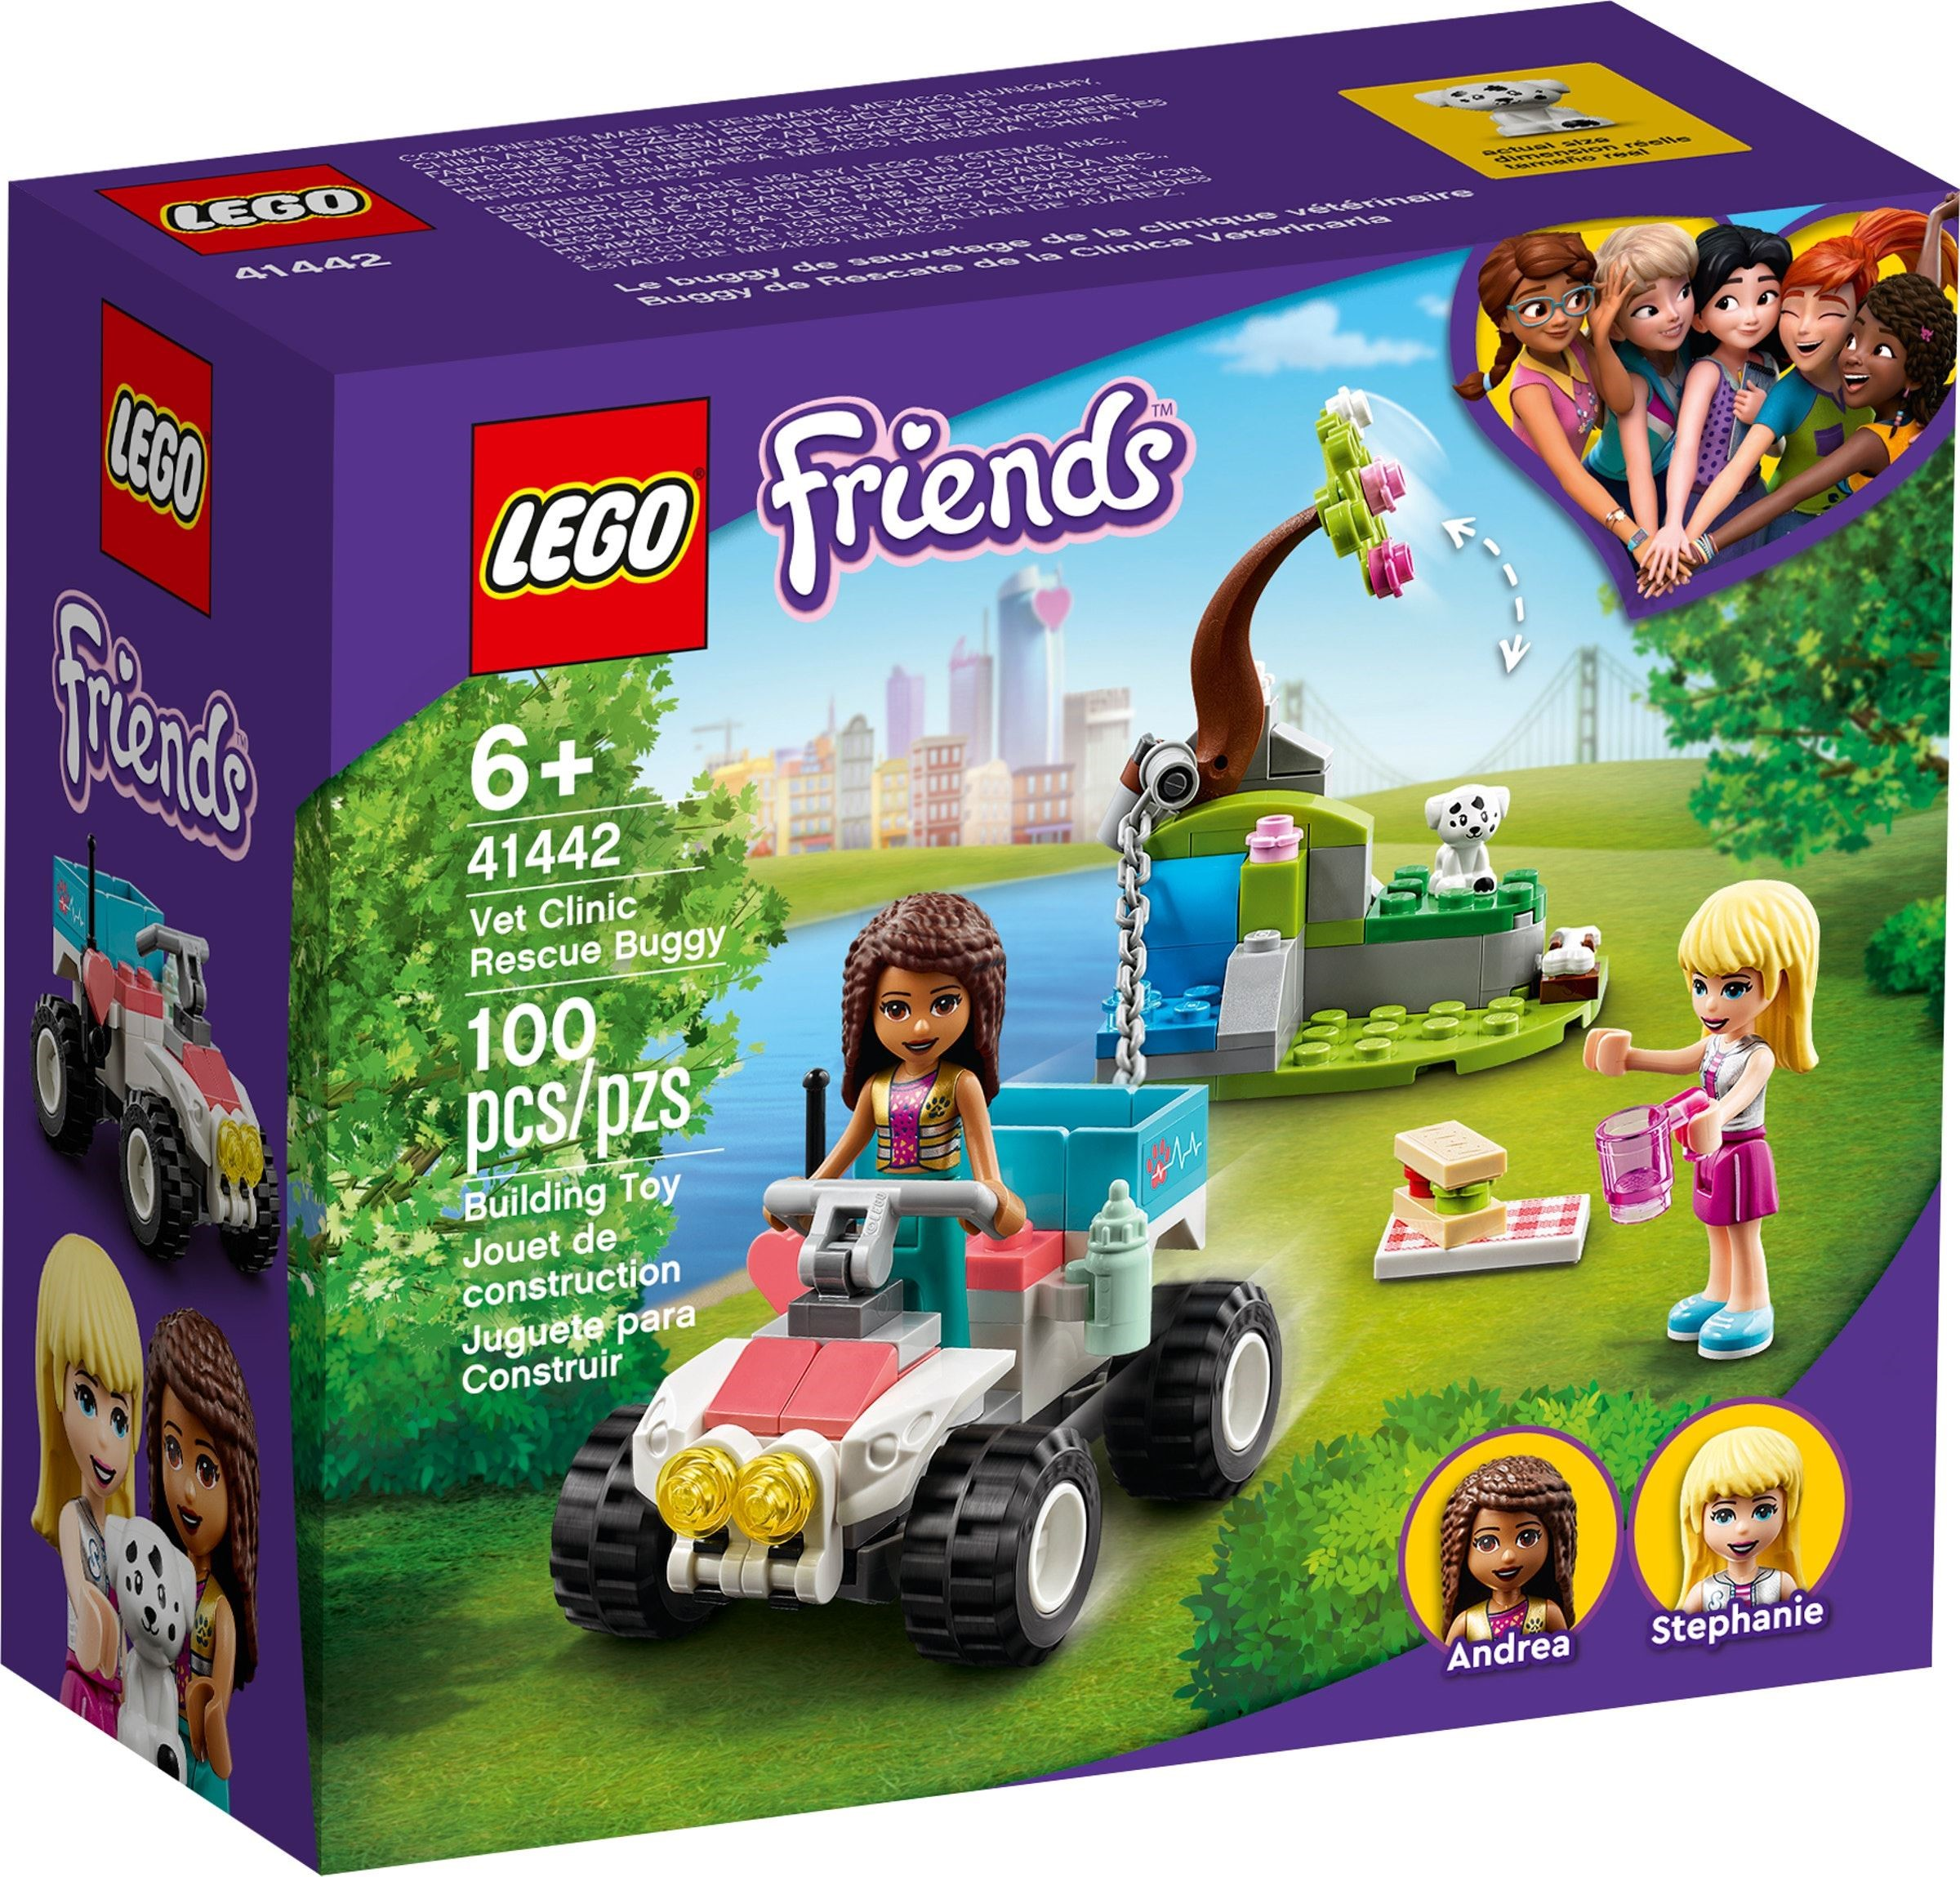 LEGO Friends - Vet Clinic Rescue Buggy (41442)